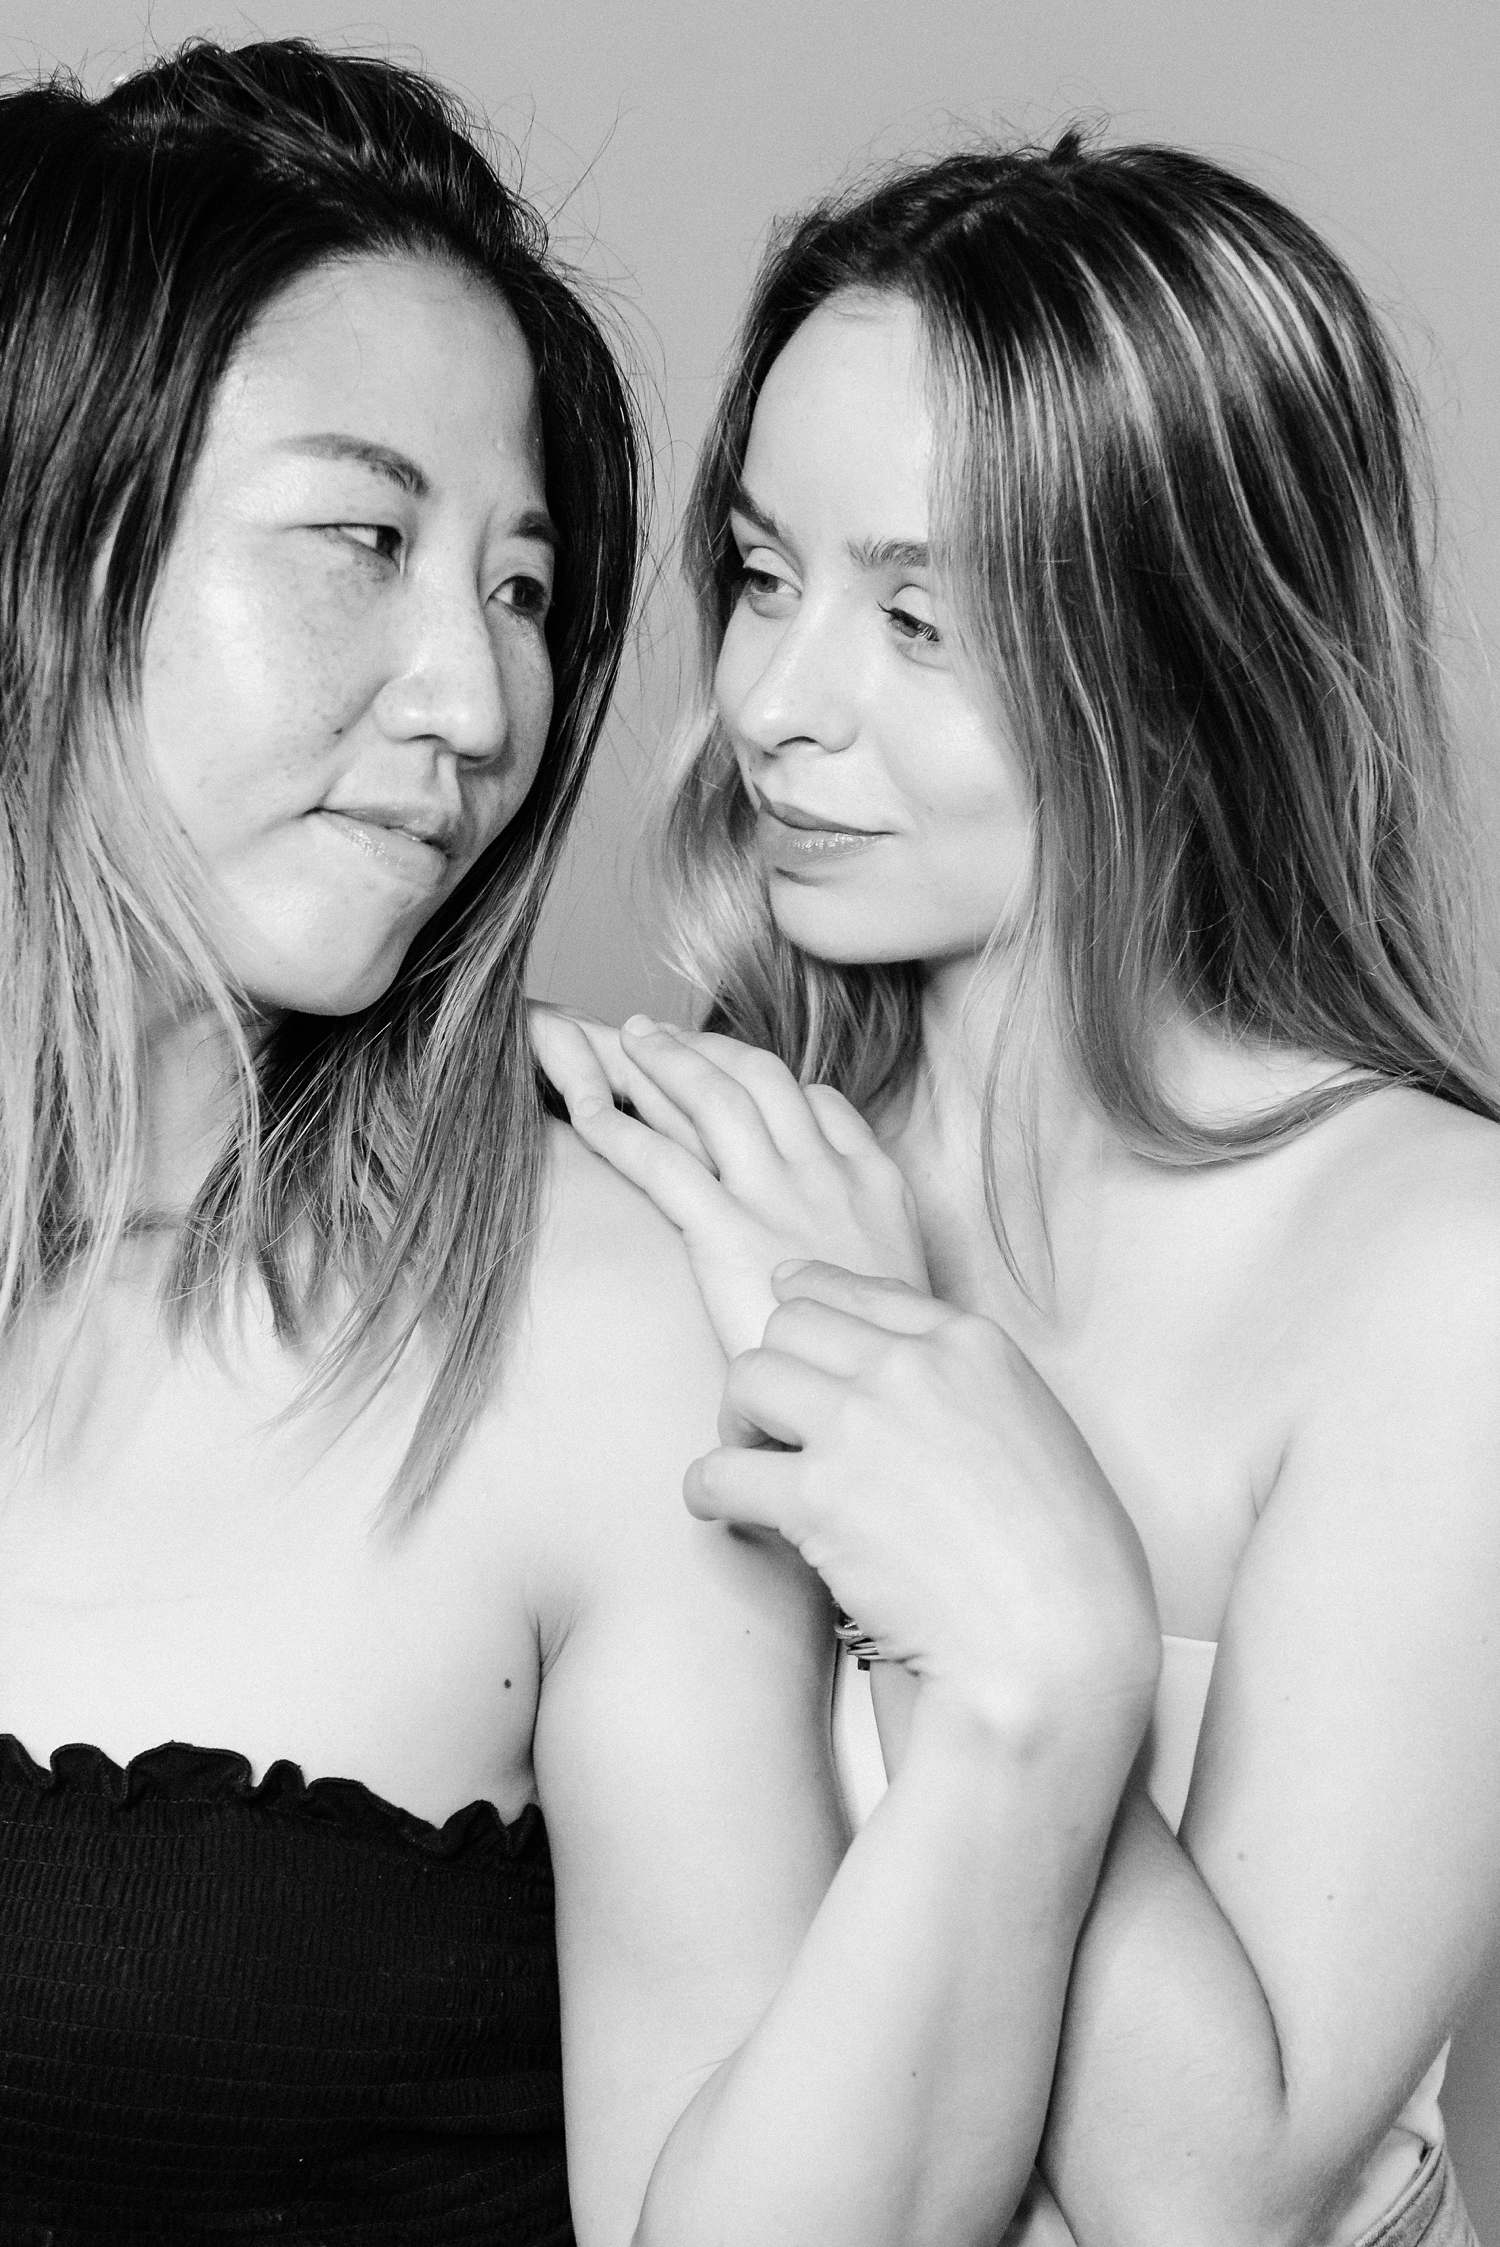 black and white studio portrait of two women sharing a gaze